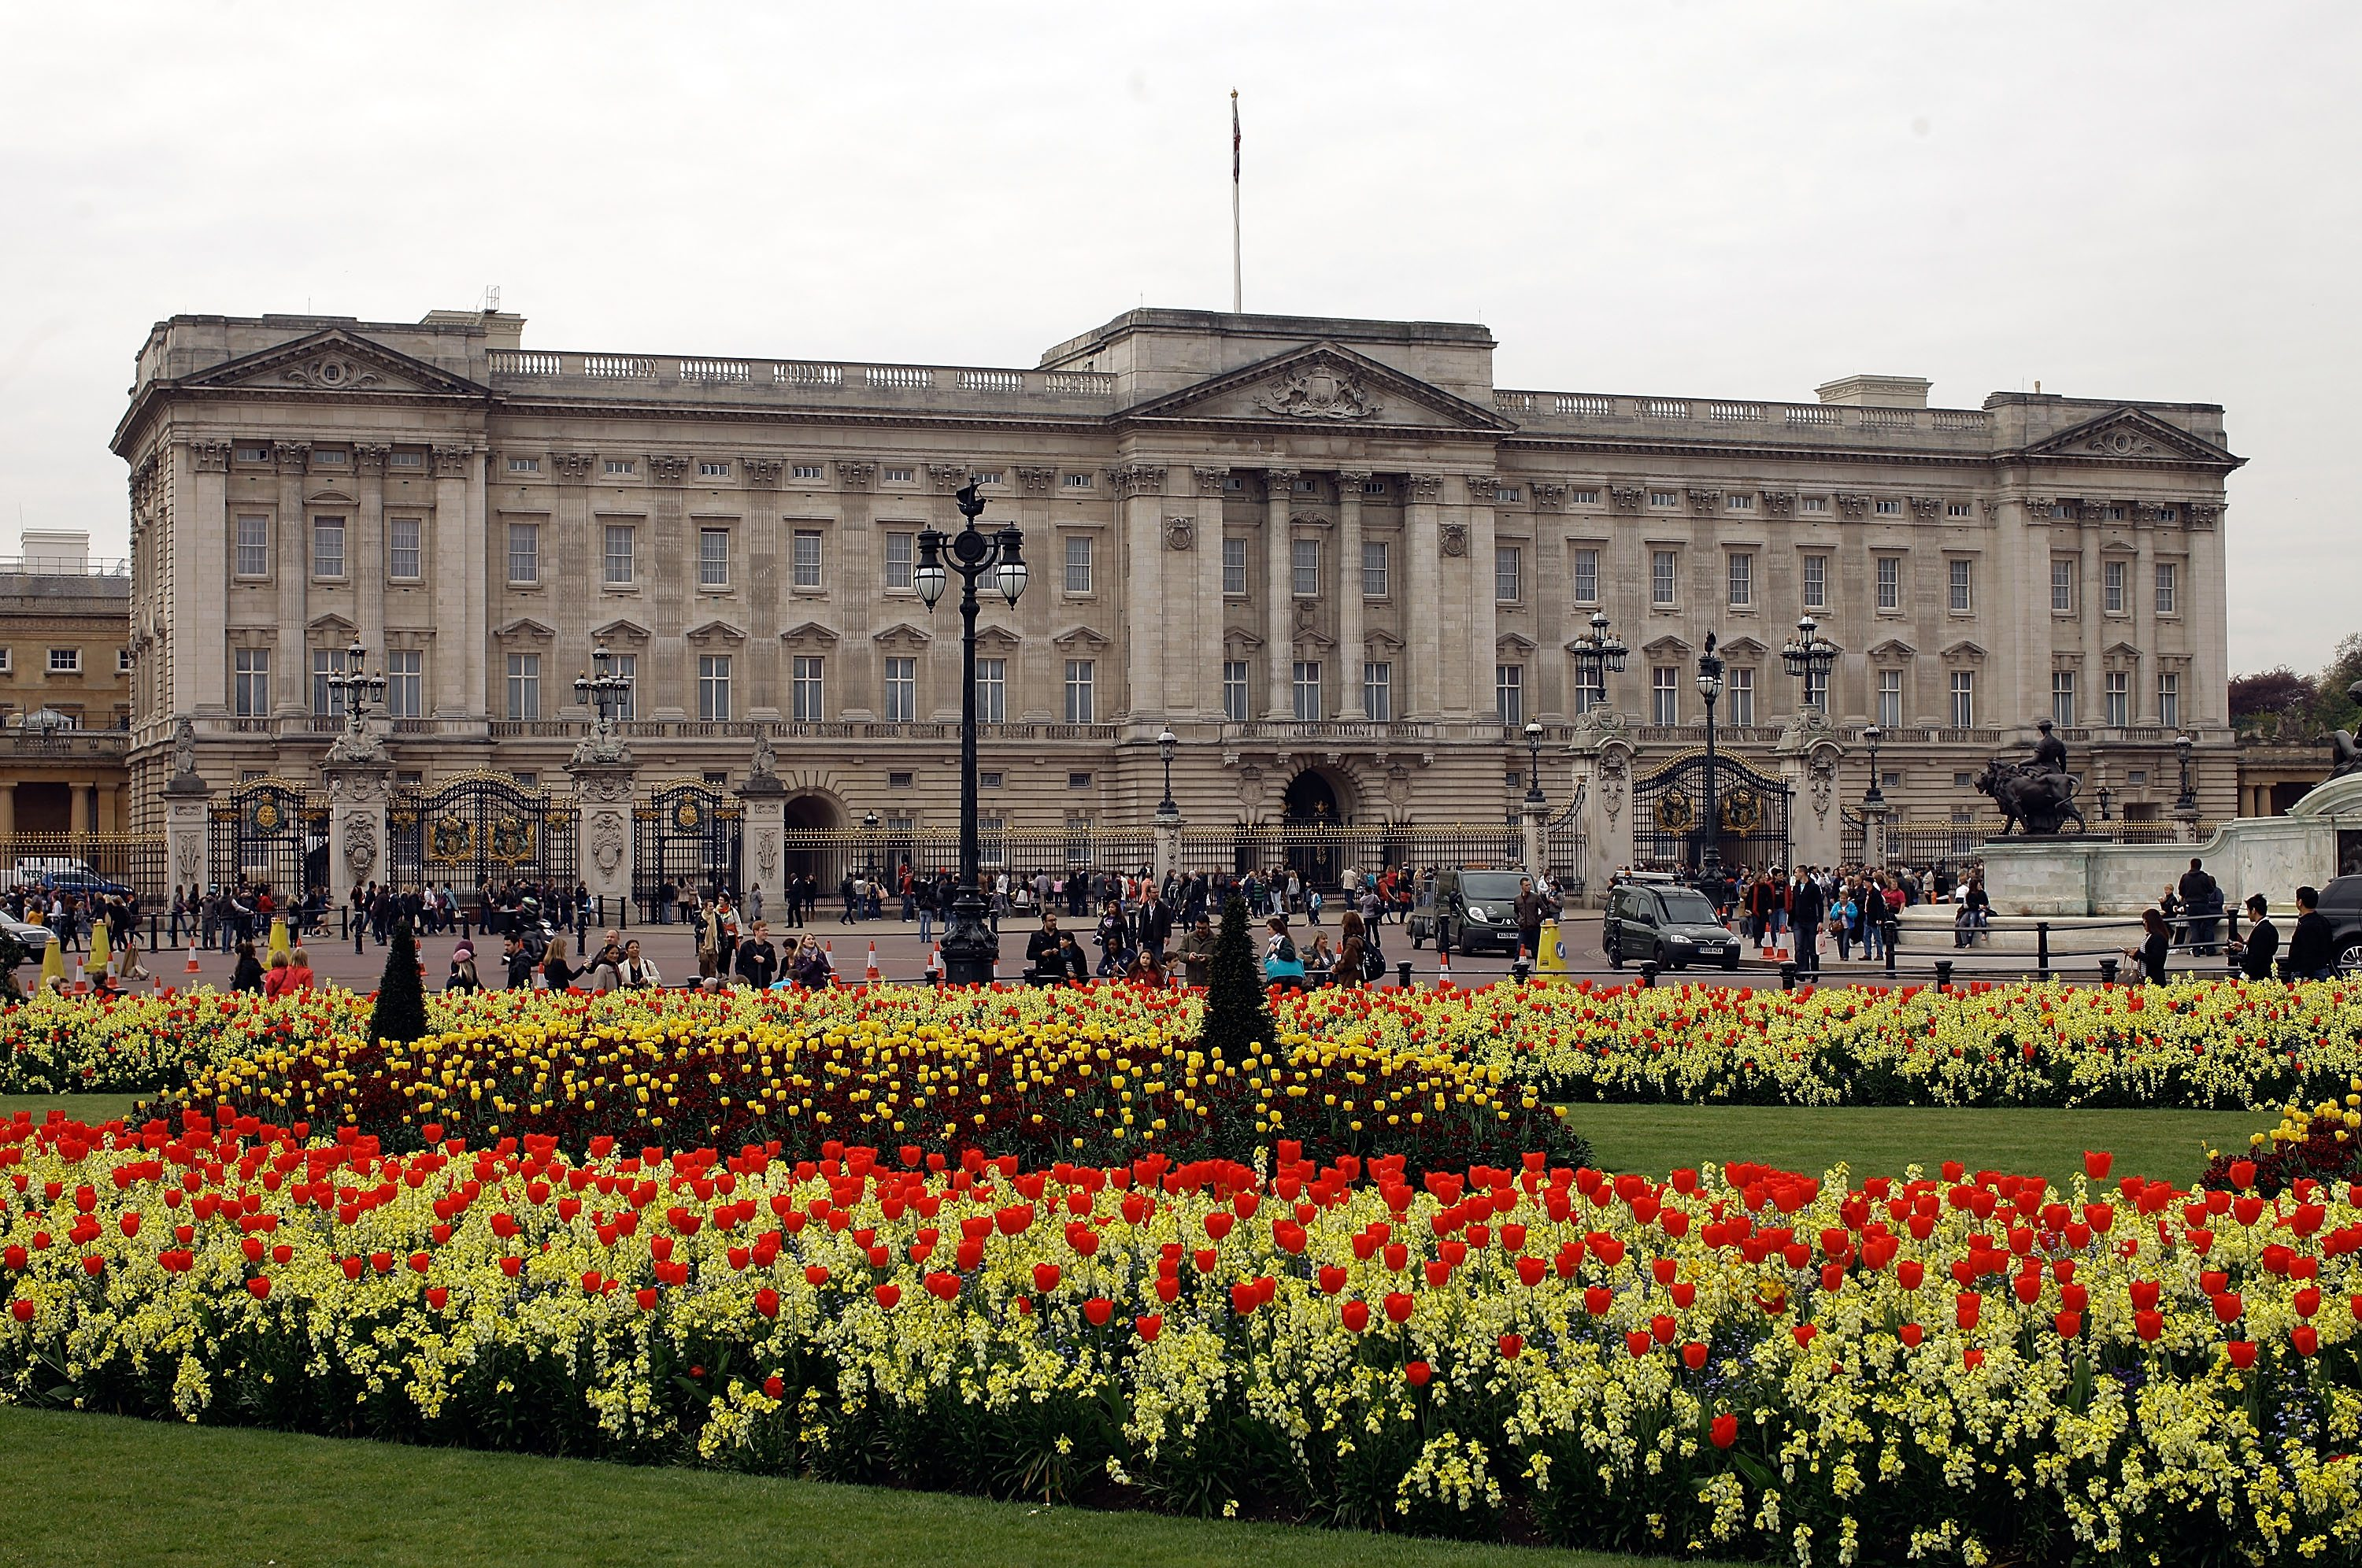 Buckingham Palace and Gardens